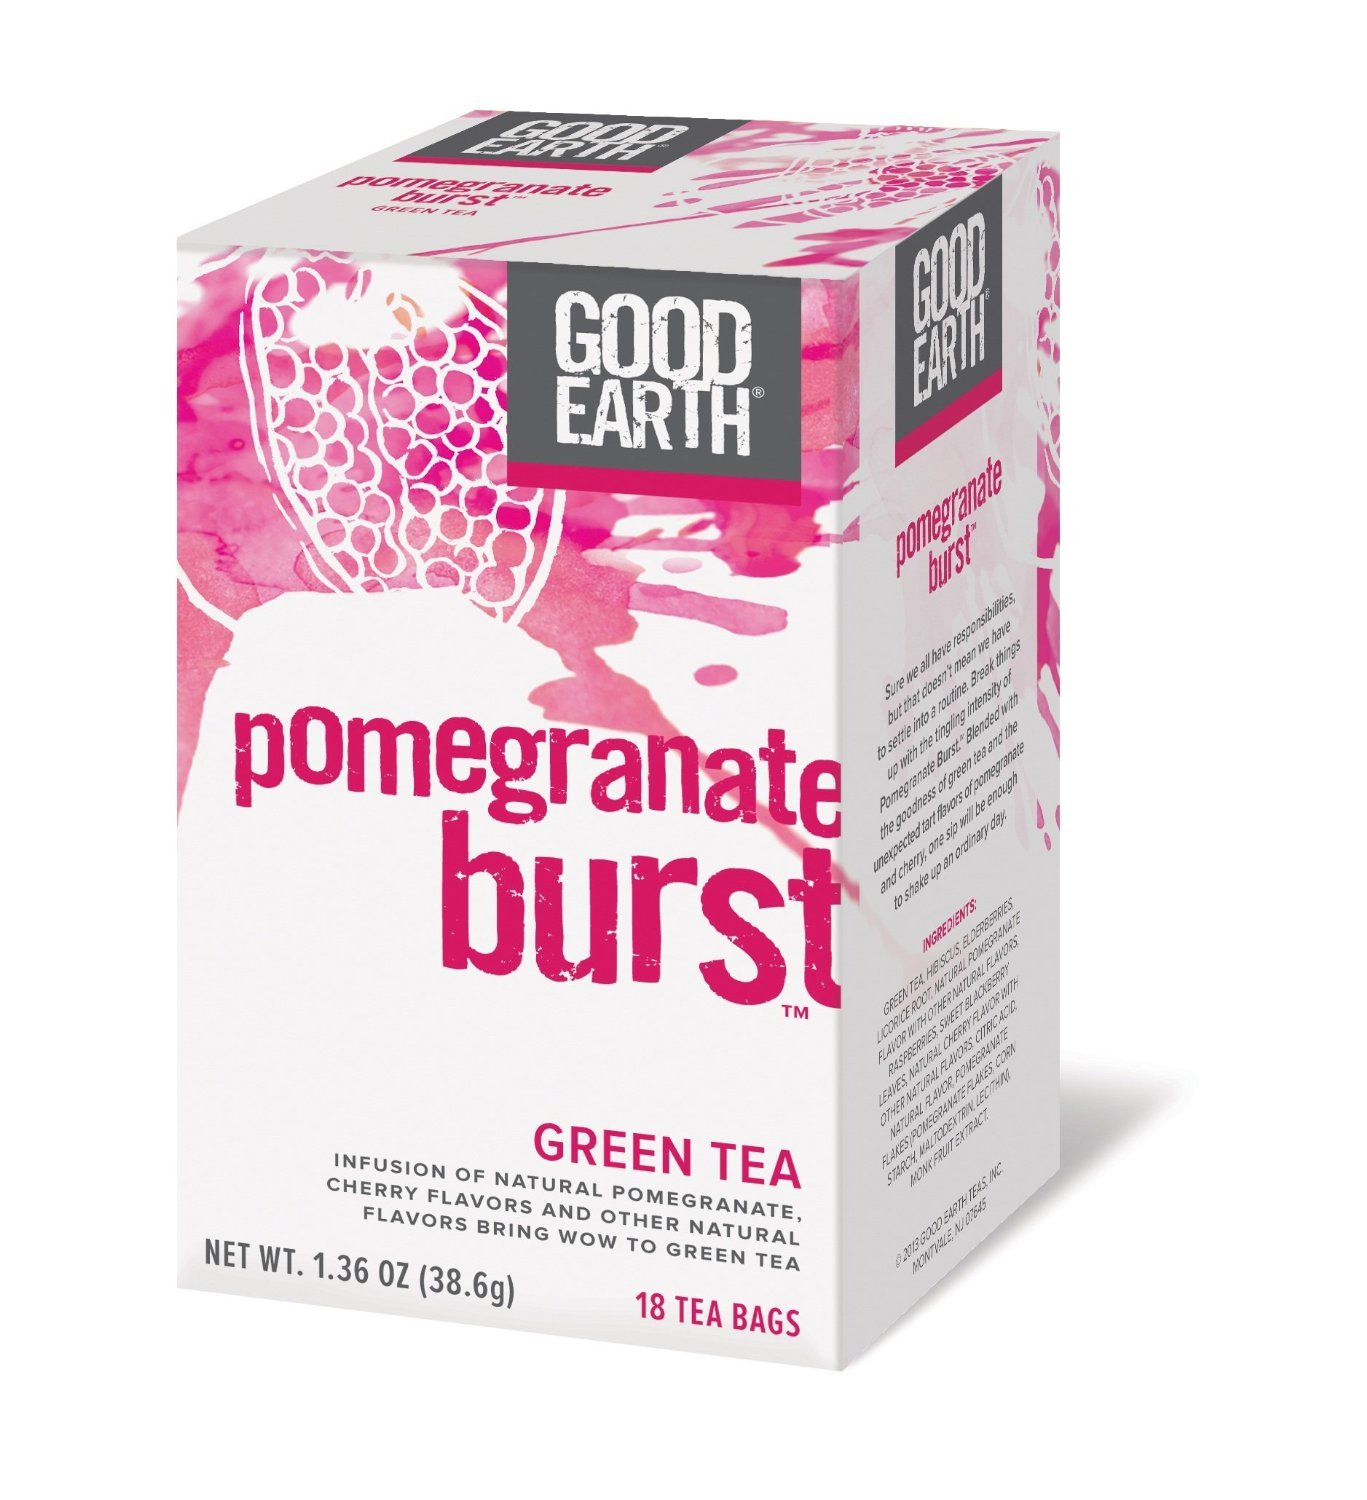 Pomegranate Burst Green Tea, 18 Tea bags by Good Earth Teas (Pack of 2)